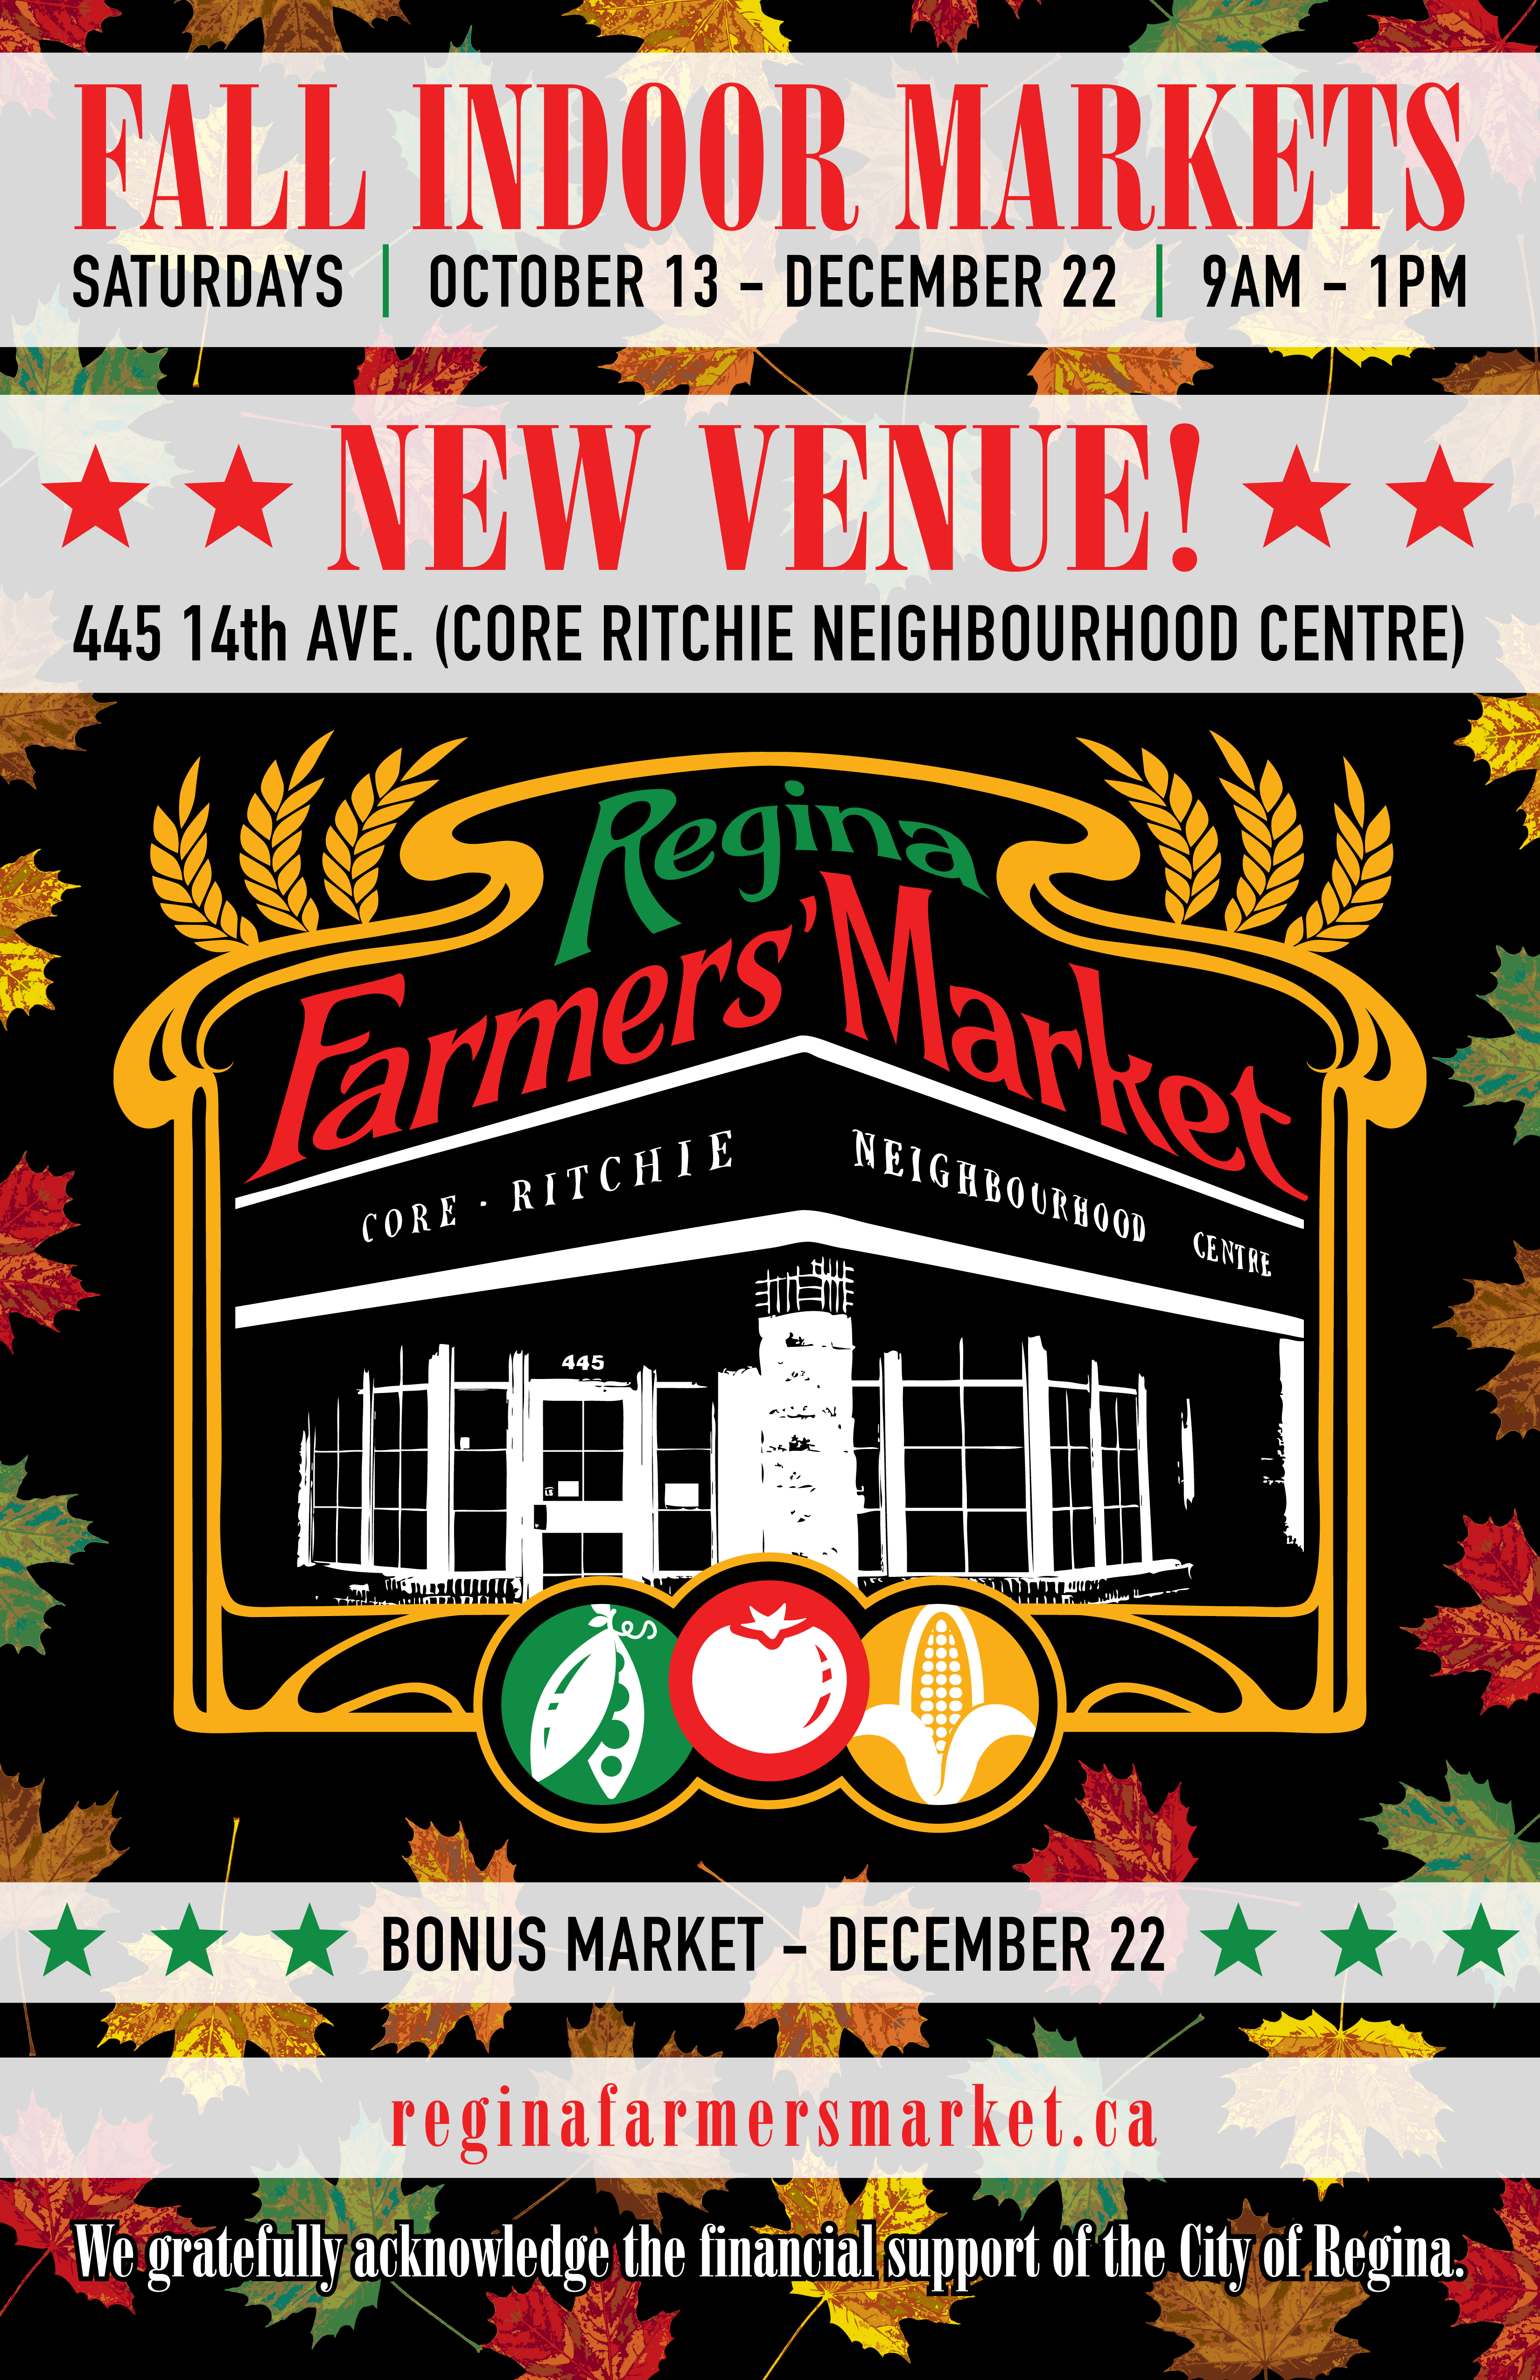 2018 Fall Indoor Market Round-Up - Image 1